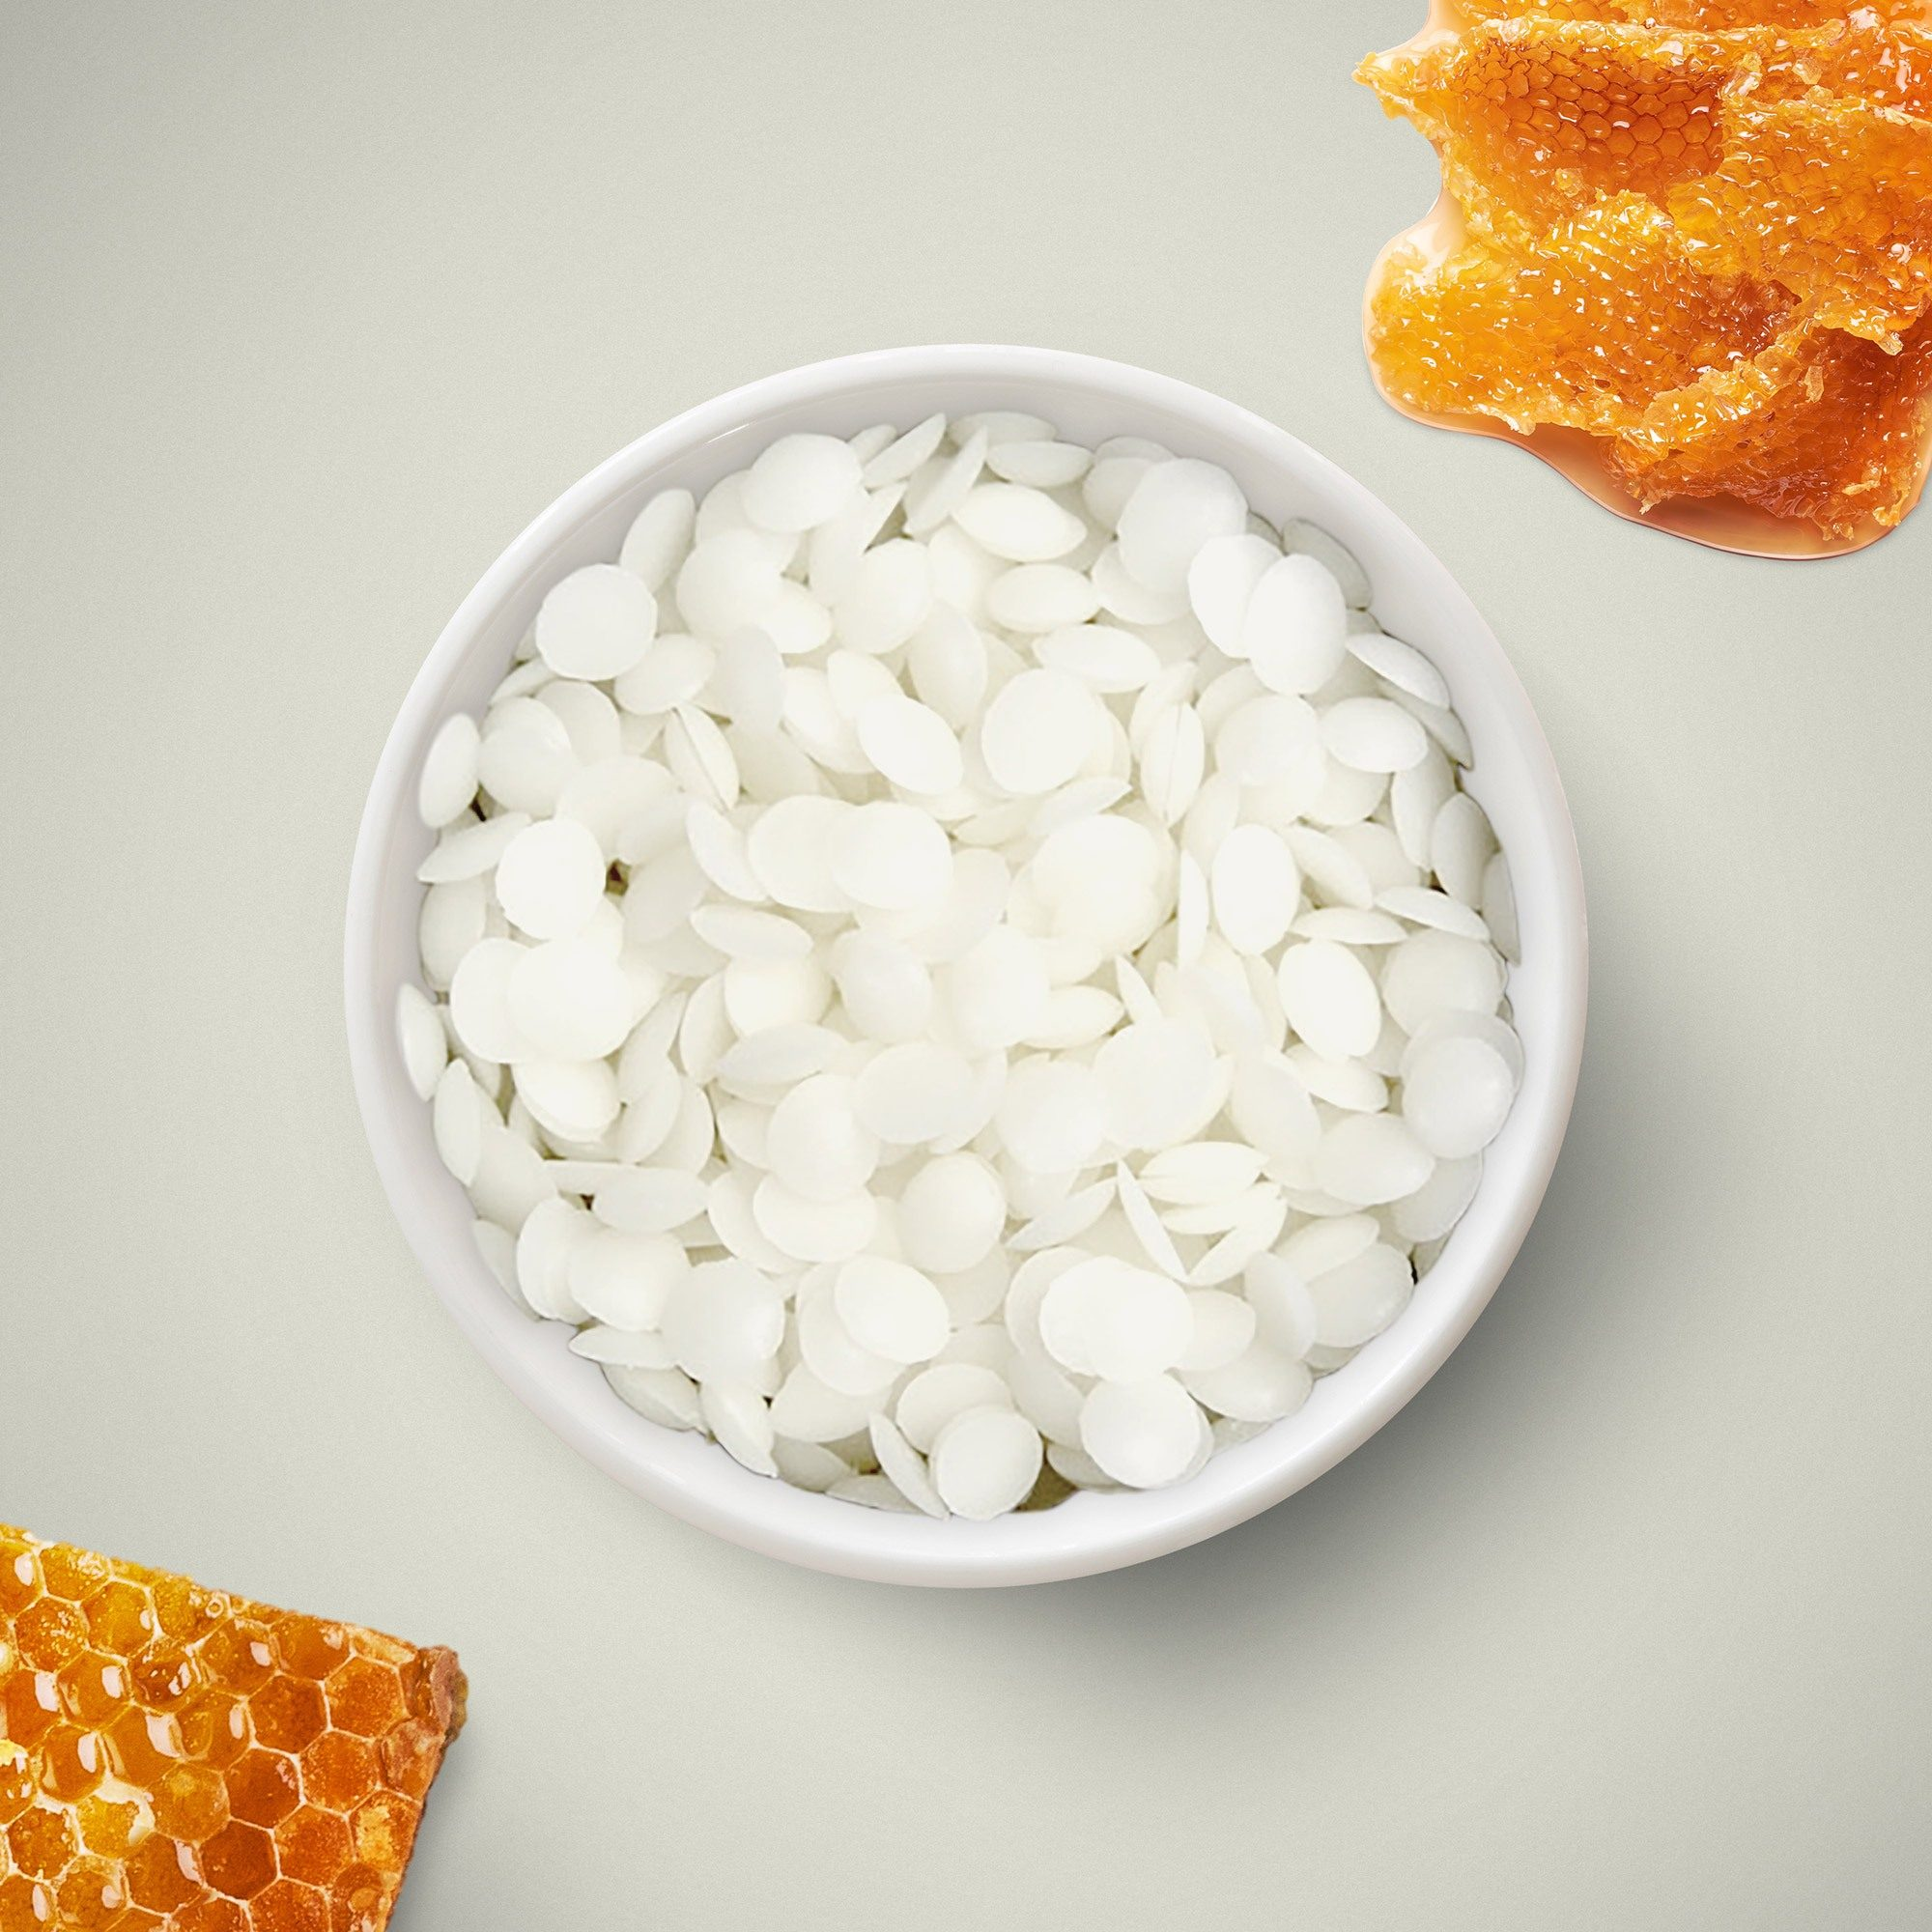 White beeswax beads in a bowl against a white background, with honeycomb around the edges.